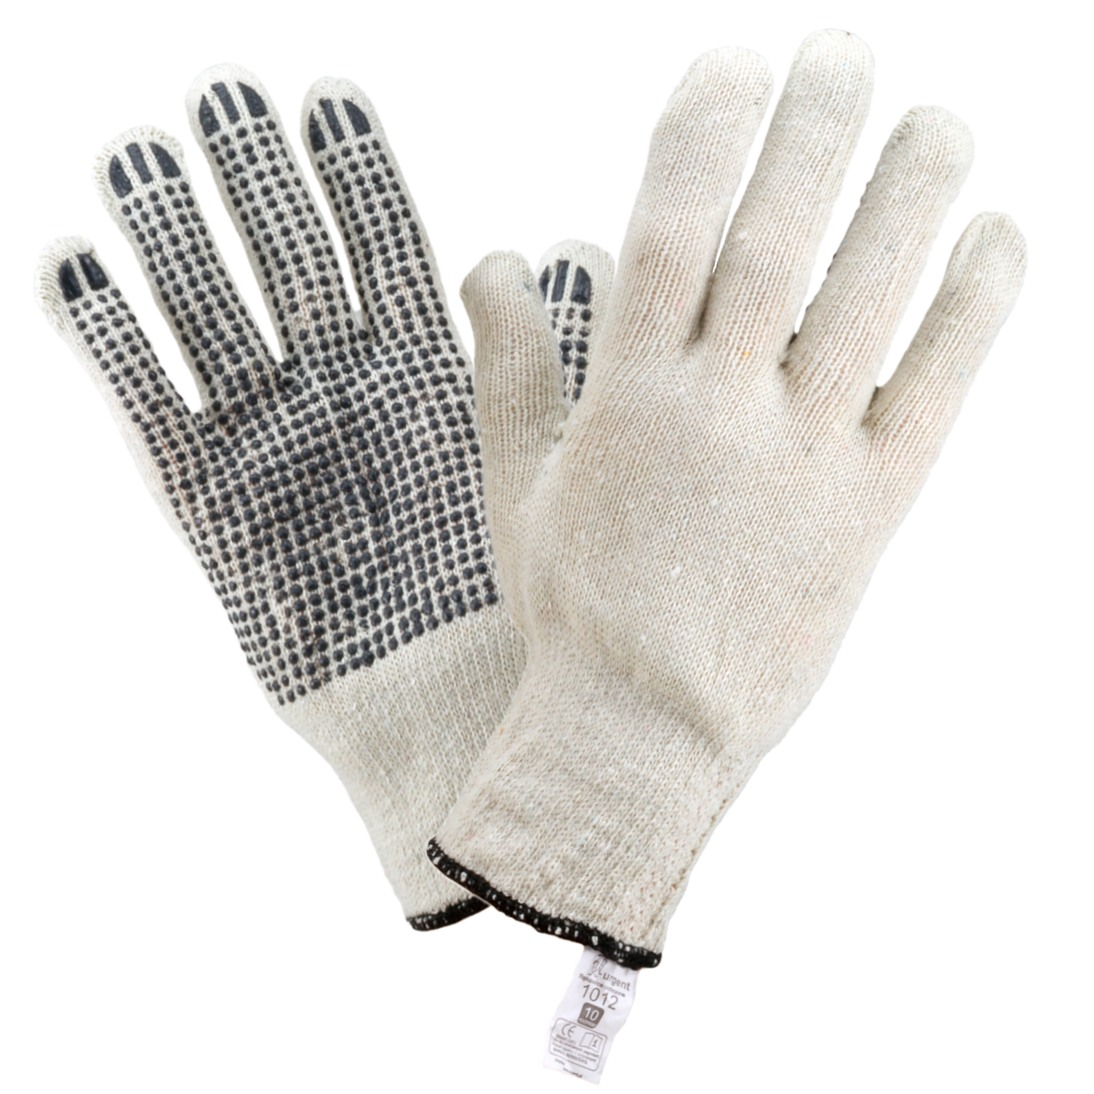 BASIC 1012 Knitted Gloves, with PVC dots